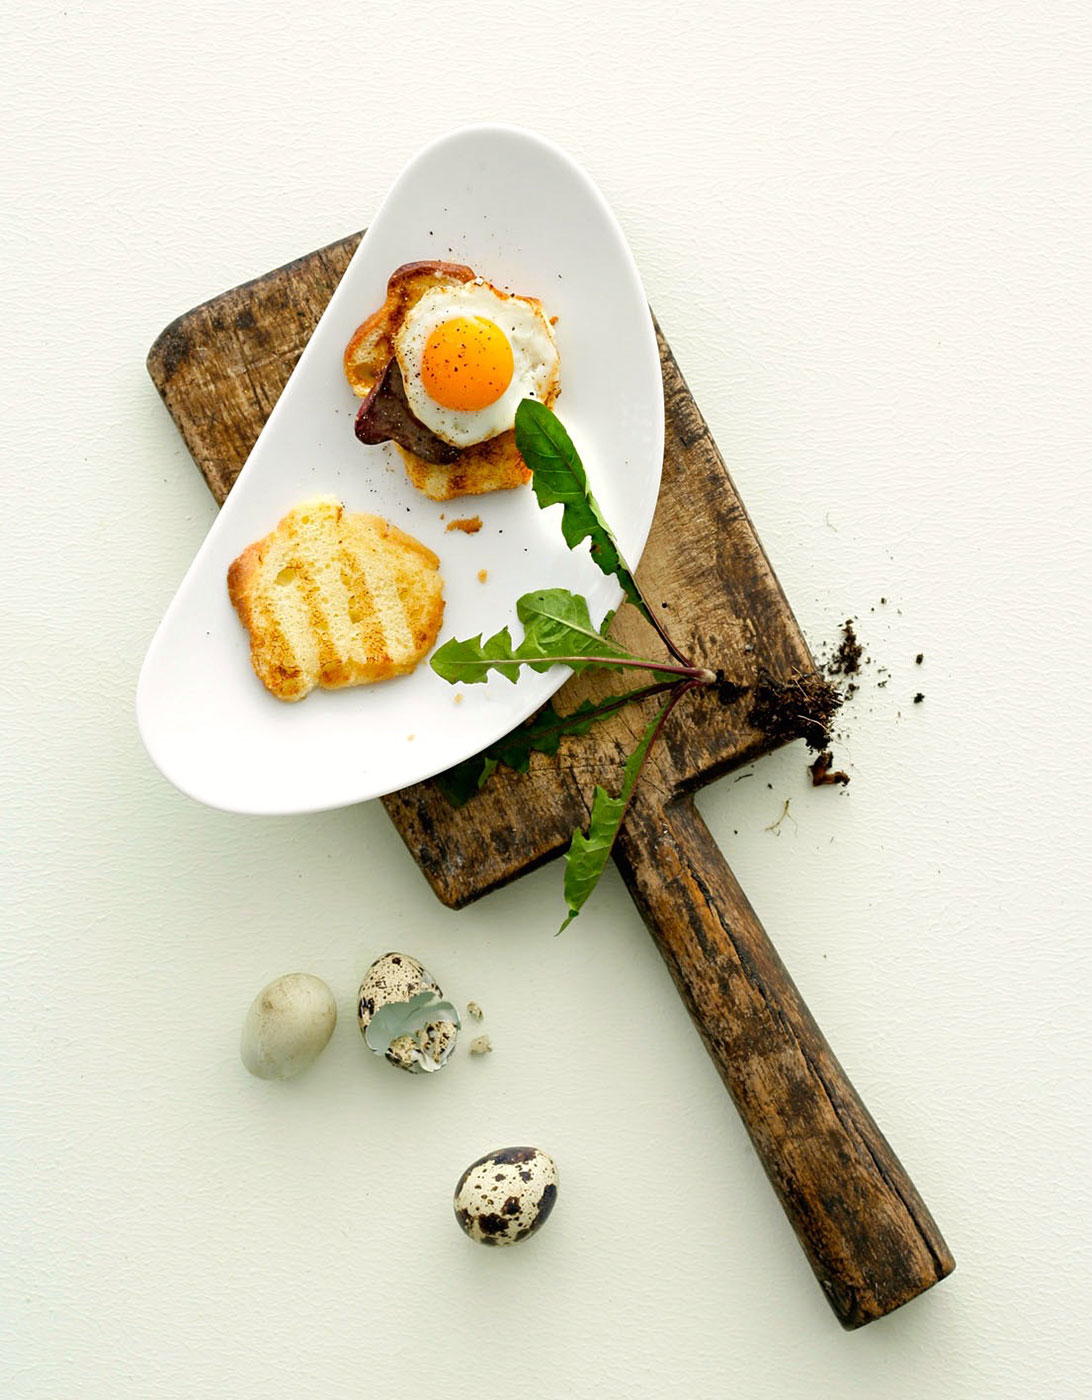 Stephan-Krauth-Foodstyling-Food-Styling-Top-Agence-Düsseldorf